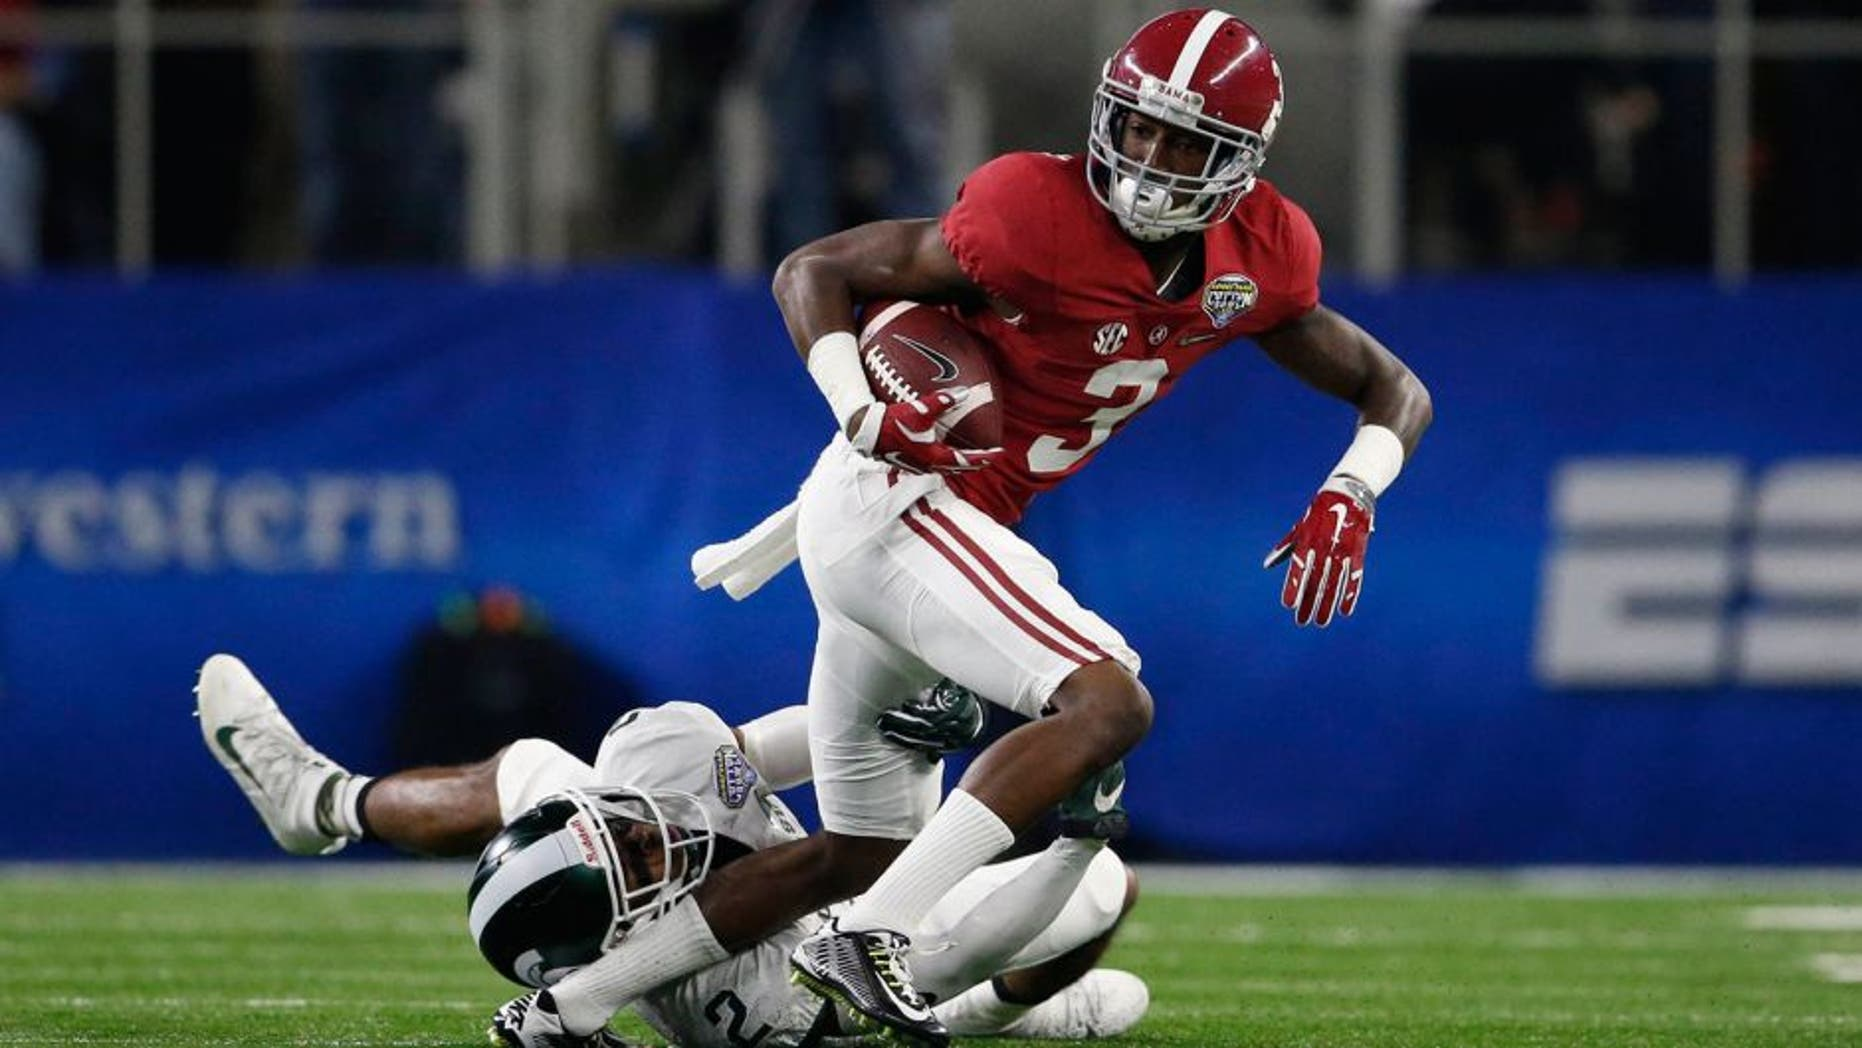 Dec 31, 2015; Arlington, TX, USA; Alabama Crimson Tide wide receiver Calvin Ridley (3) is tackled by Michigan State Spartans cornerback Darian Hicks (2) in the first quarter in the 2015 CFP semifinal at the Cotton Bowl at AT&T Stadium. Mandatory Credit: Matthew Emmons-USA TODAY Sports